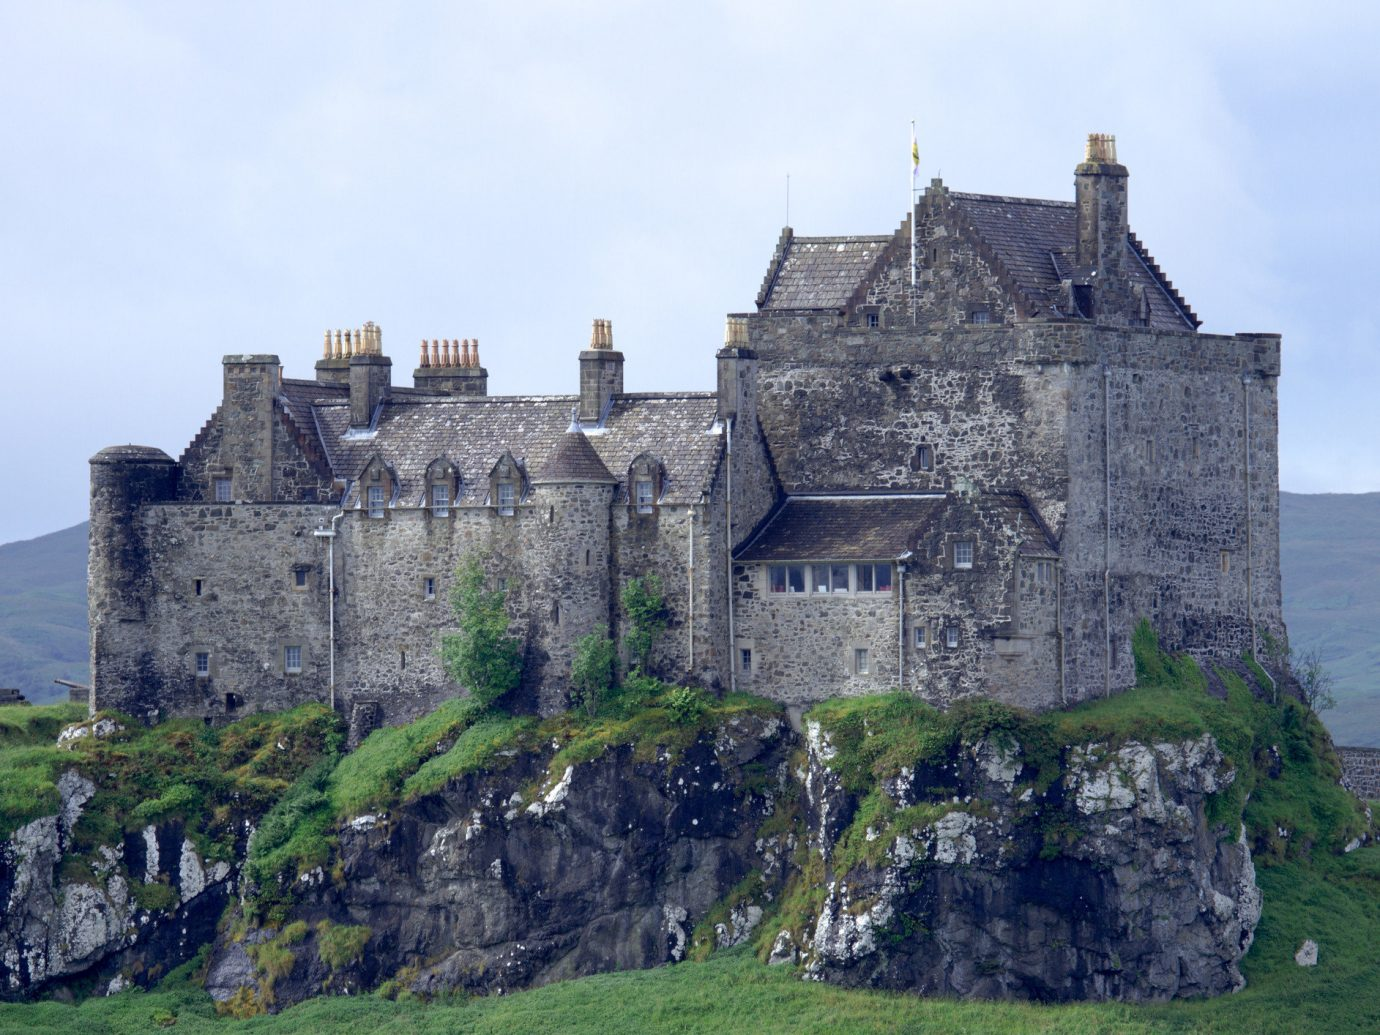 Landmarks Offbeat building grass sky outdoor castle rock château medieval architecture fortification highland stone old national trust for places of historic interest or natural beauty middle ages historic site Ruins stately home turret citadelle tours history grassy pasture hillside